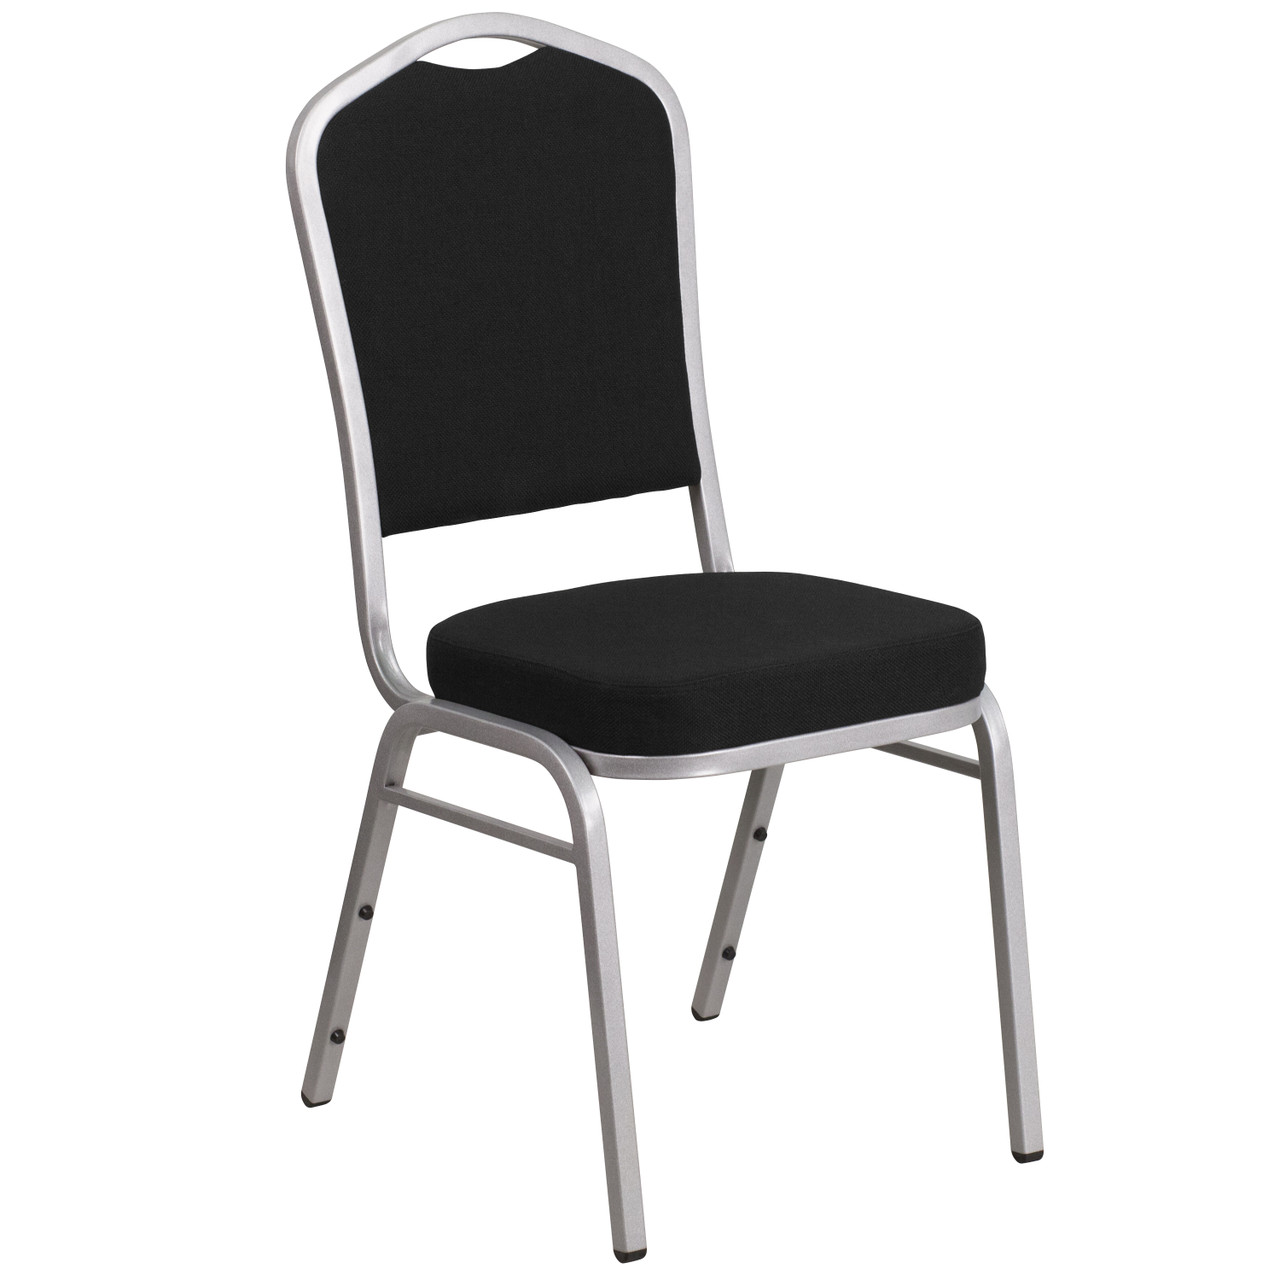 Banquet Chairs Black Fabric Stackable Chairs